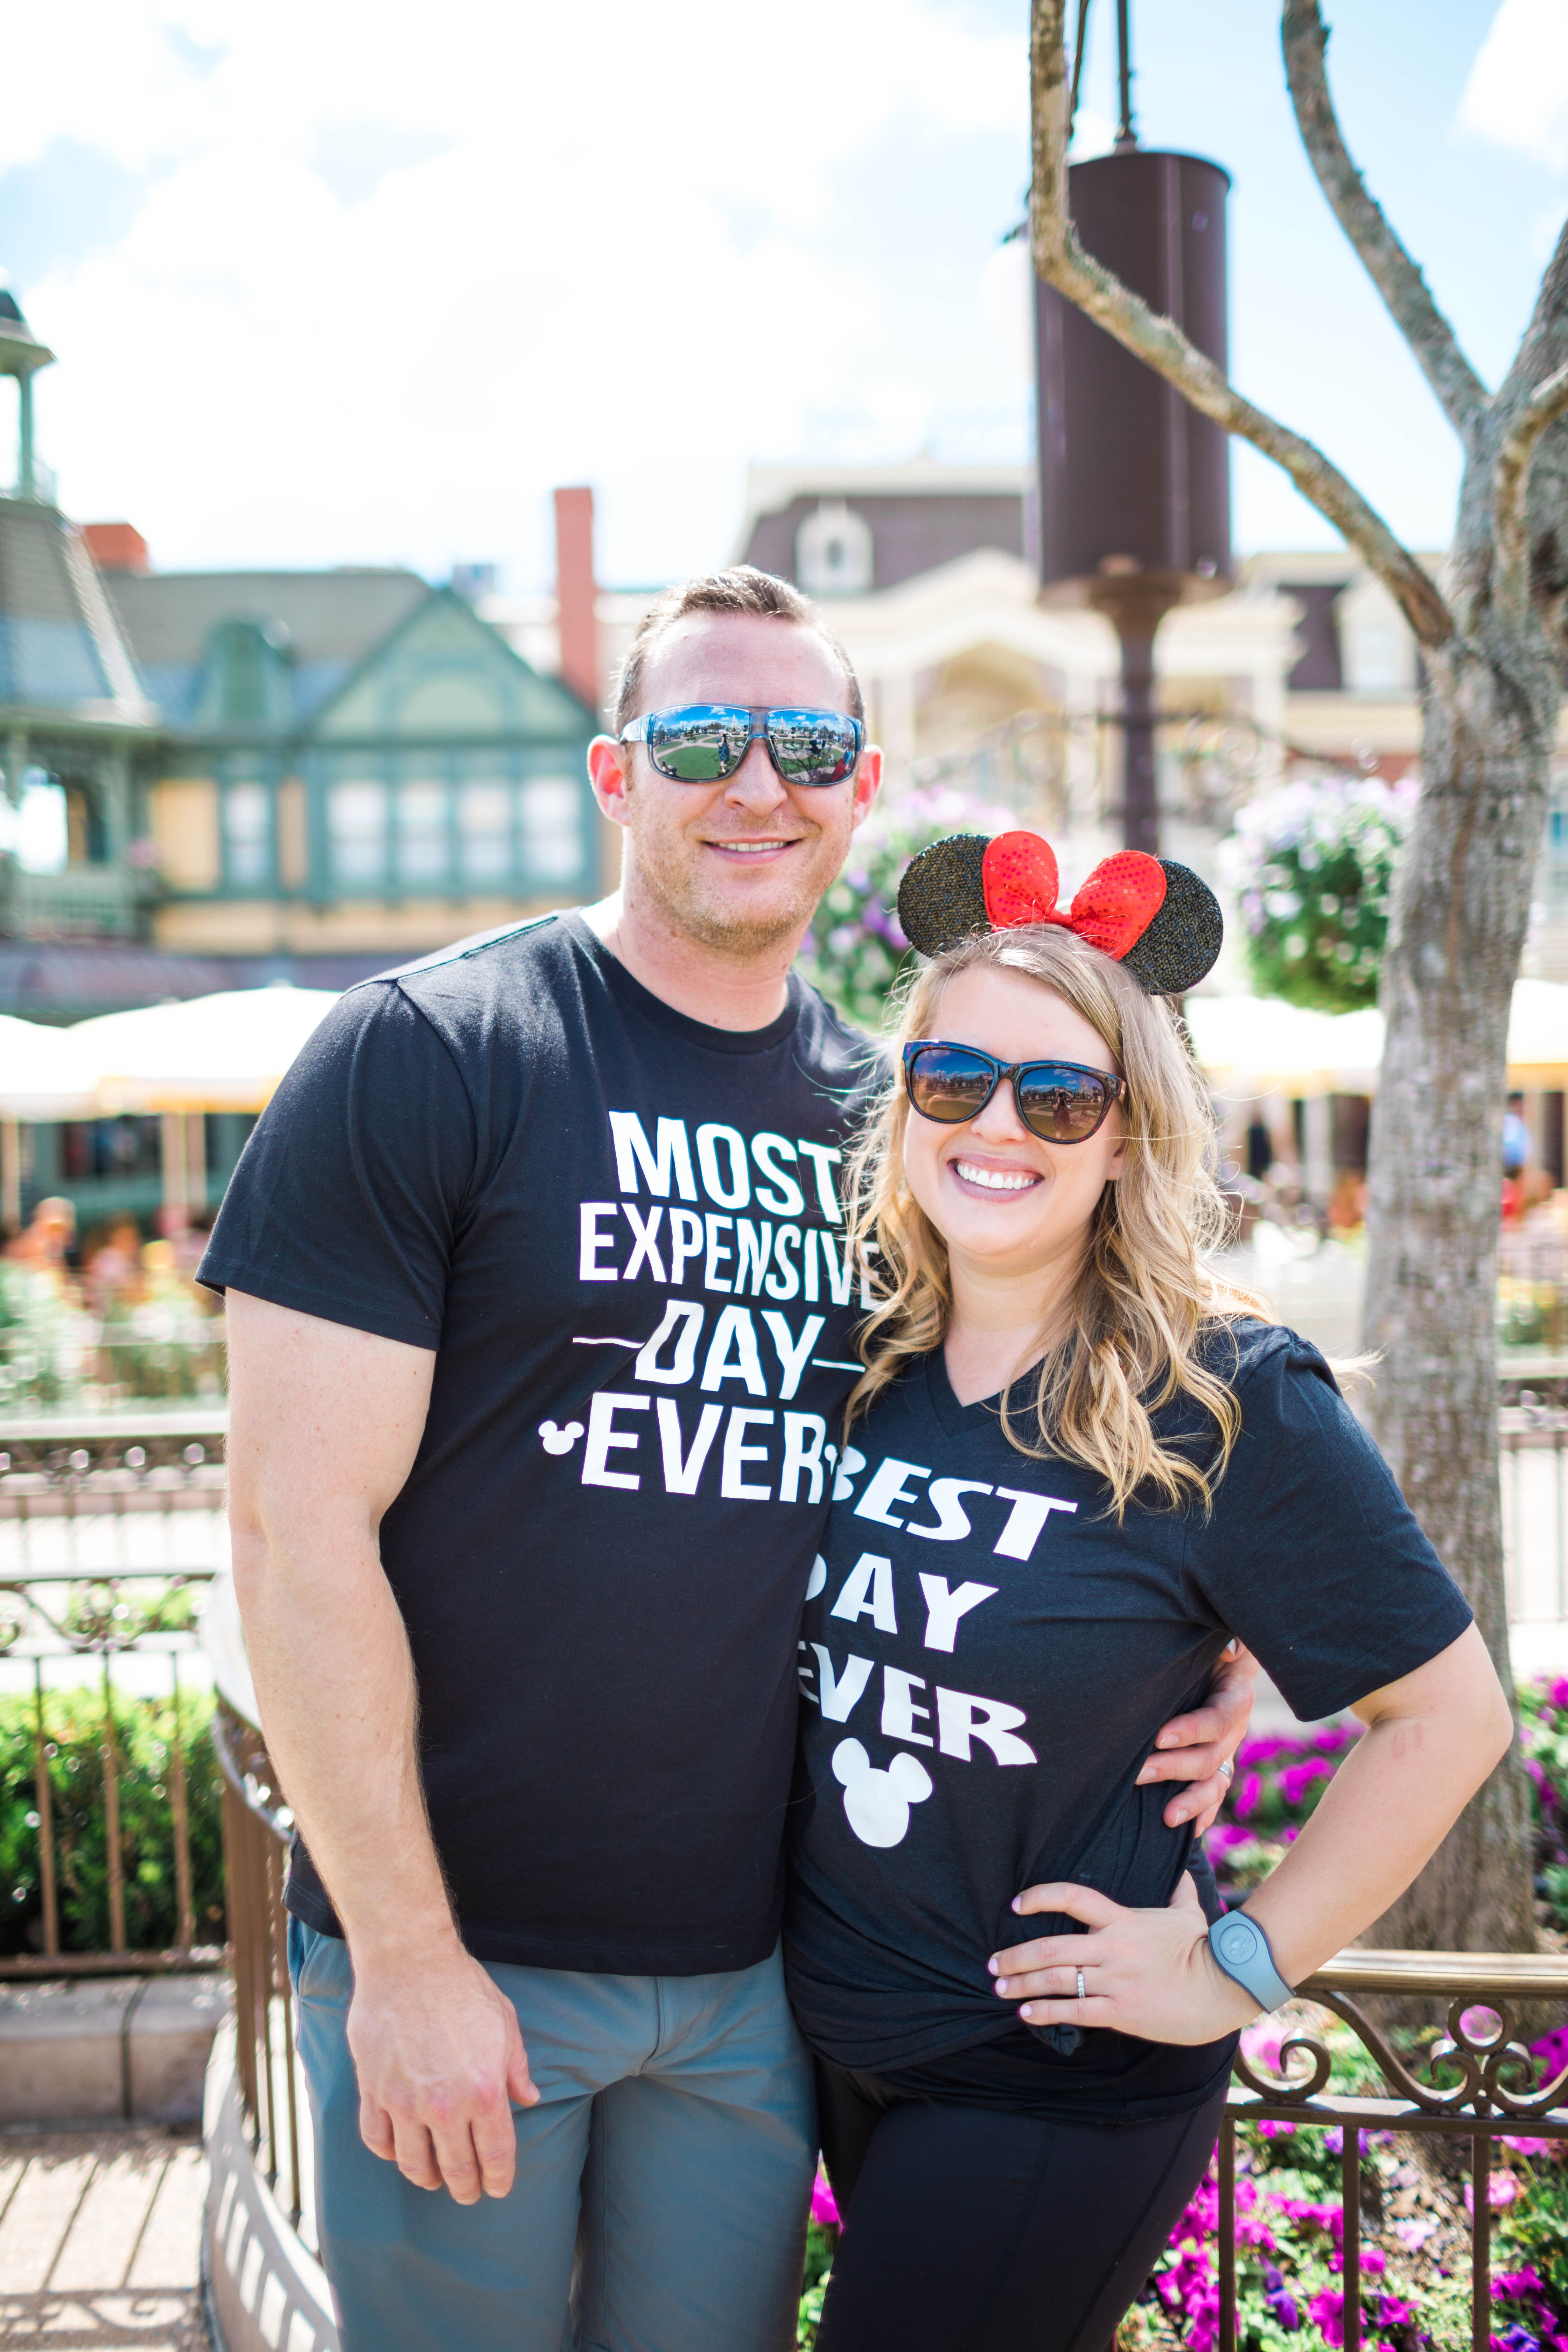 Funny Disney Shirts for Families